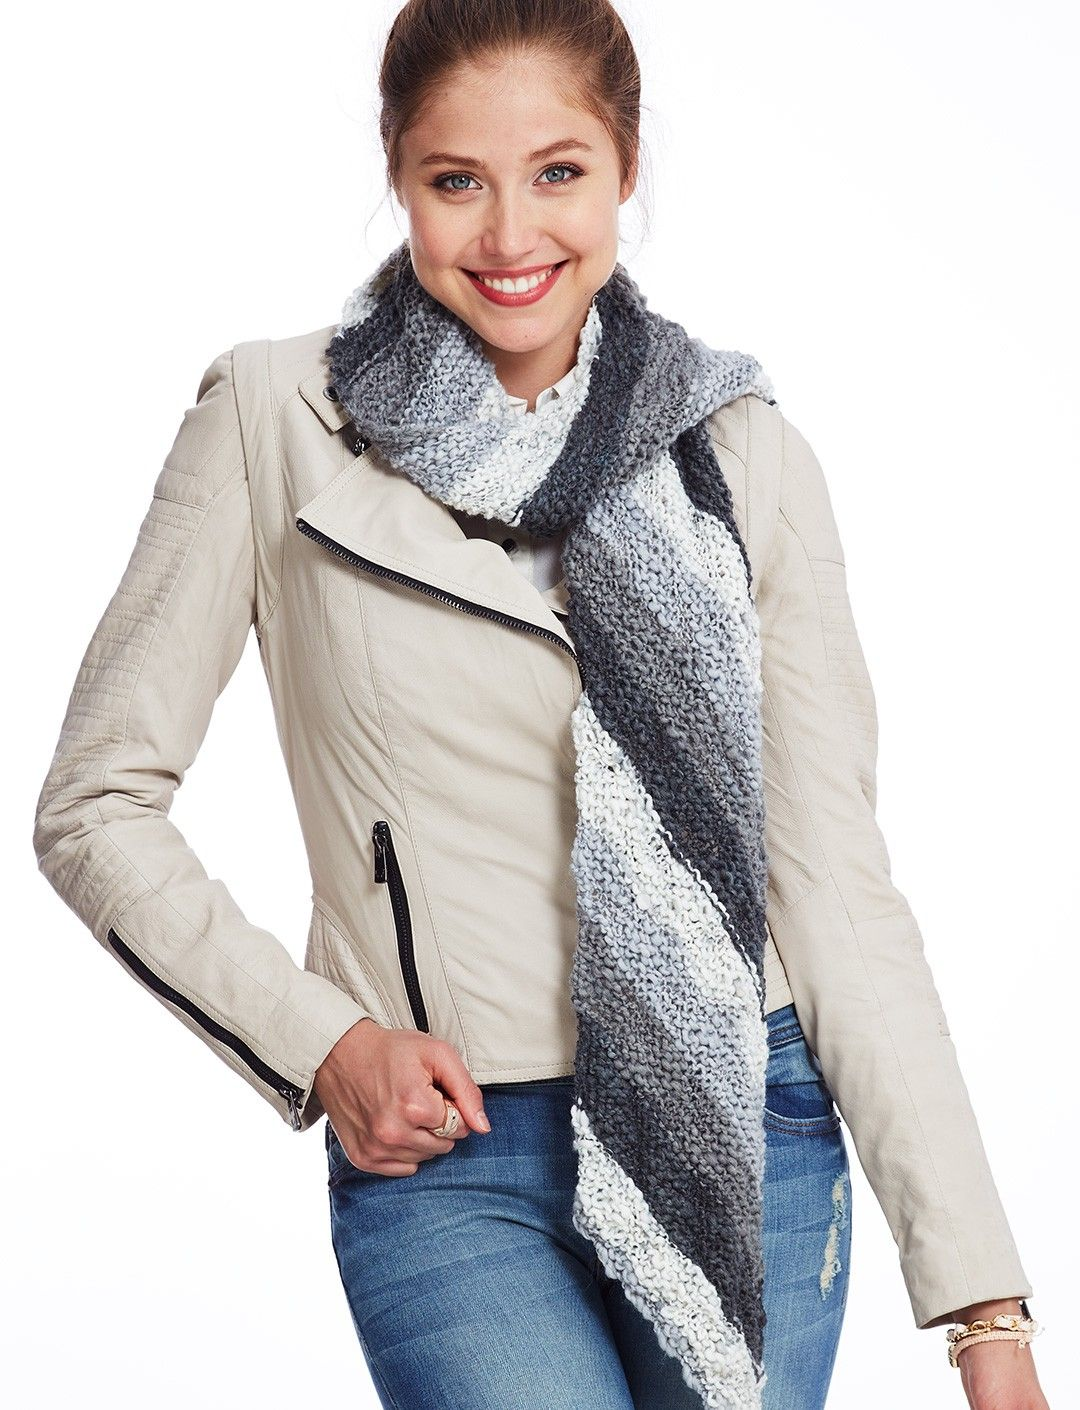 Yarnspirations.com - Bernat Easy Angles Scarf - Patterns ...